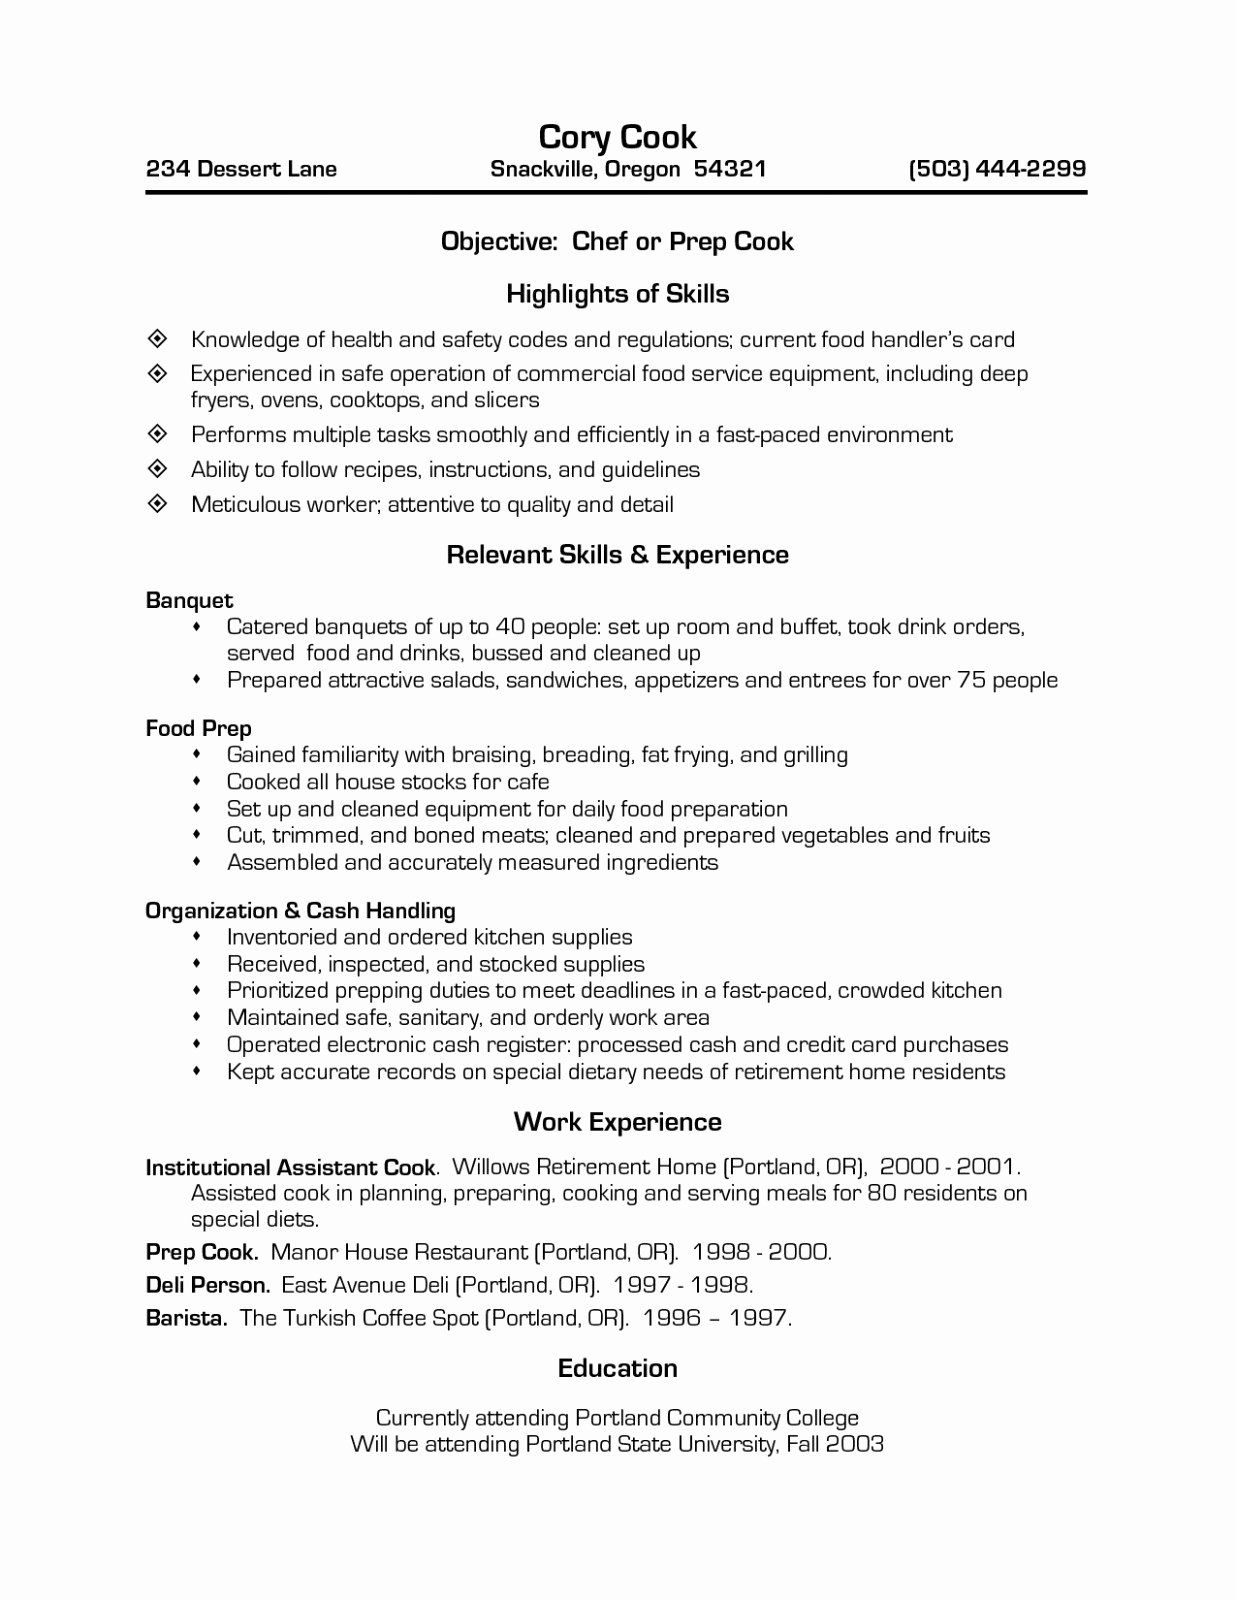 23 Line Cook Resume Examples In 2020 Chef Resume Resume